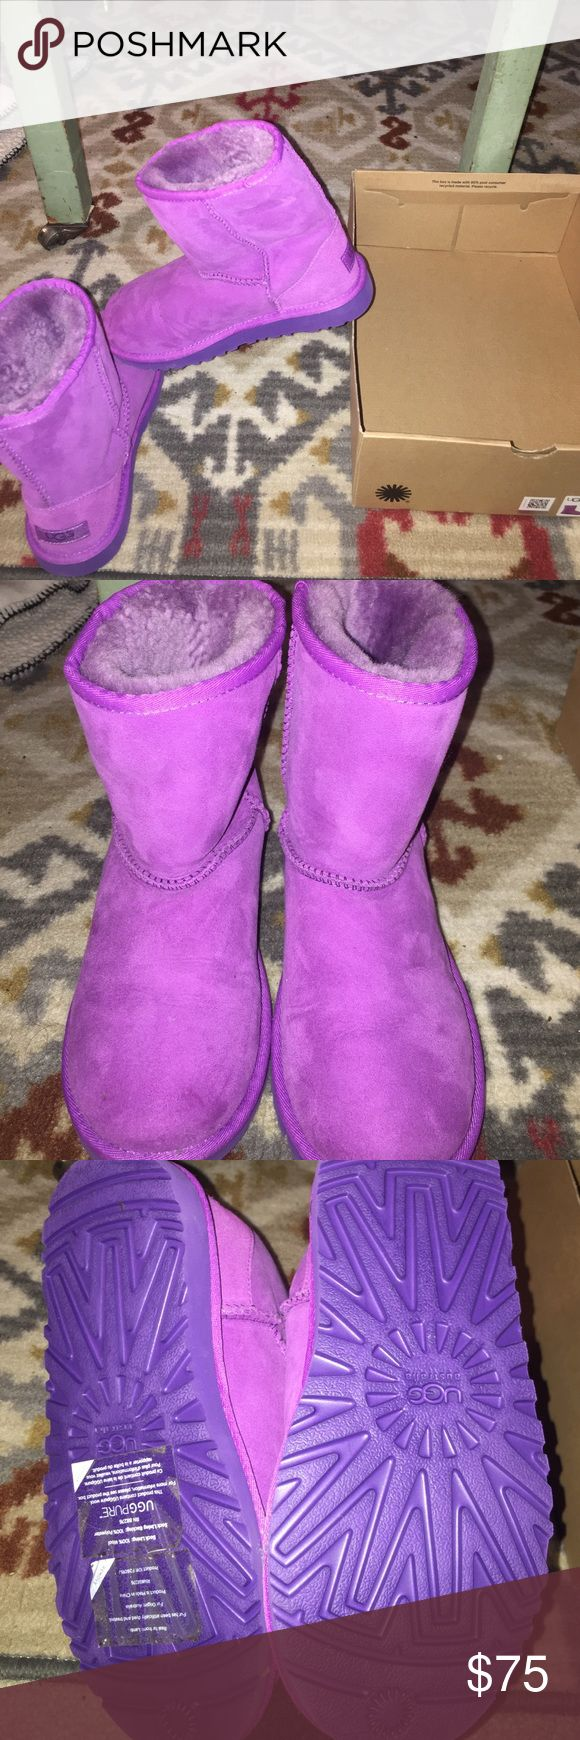 NWB PURPLE UGGS Brand new purple uggs! Fun color and perfect for spring ! Size 4 in kids so really like a 5/6 women's UGG Shoes Winter & Rain Boots